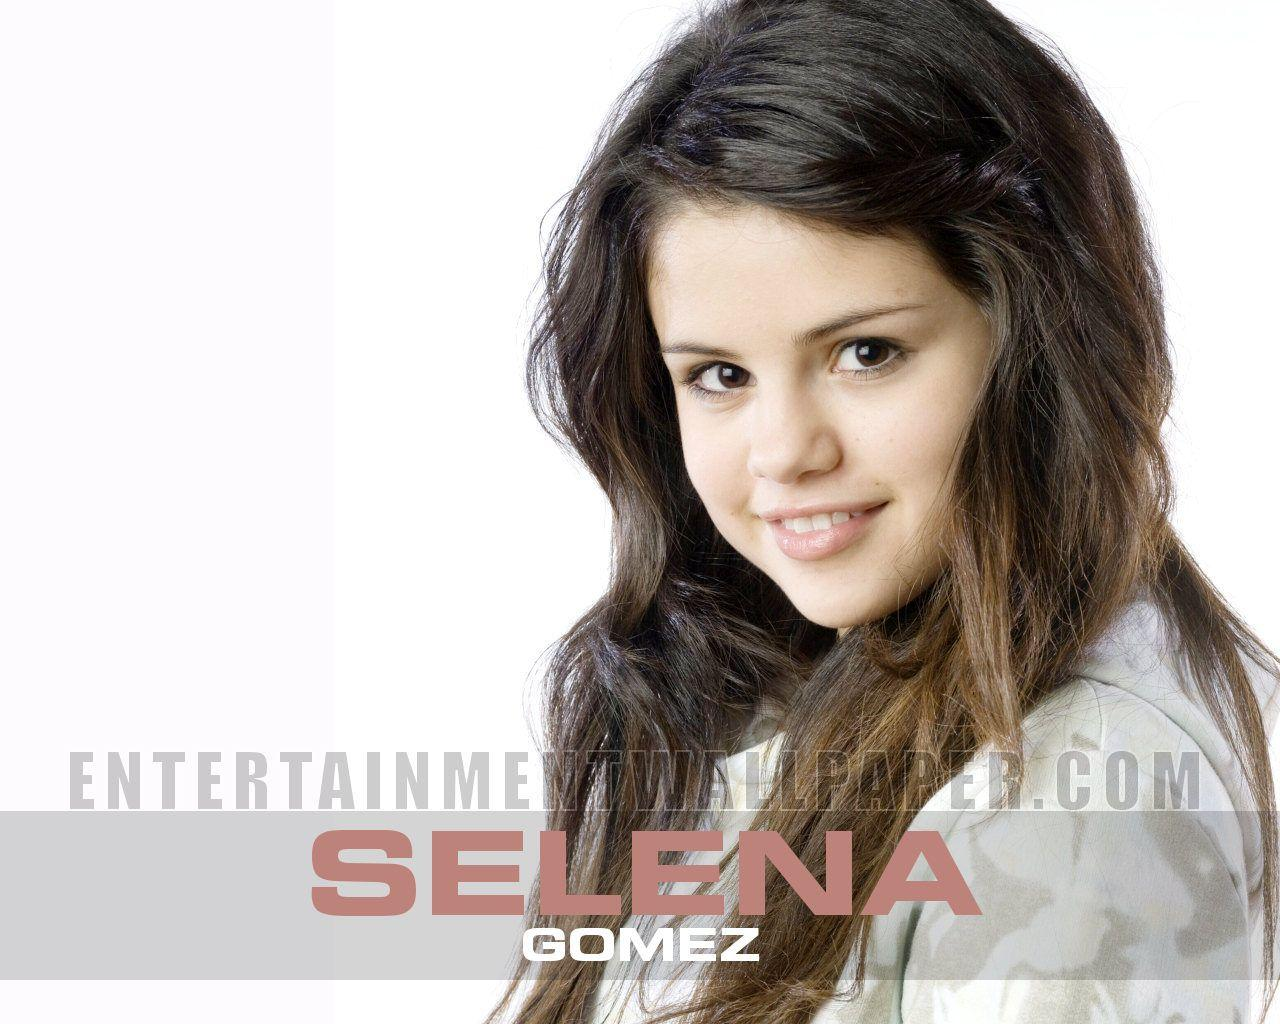 Selena Gomez Download Picture Hd Cool 7 HD Wallpapers | Hdimges.